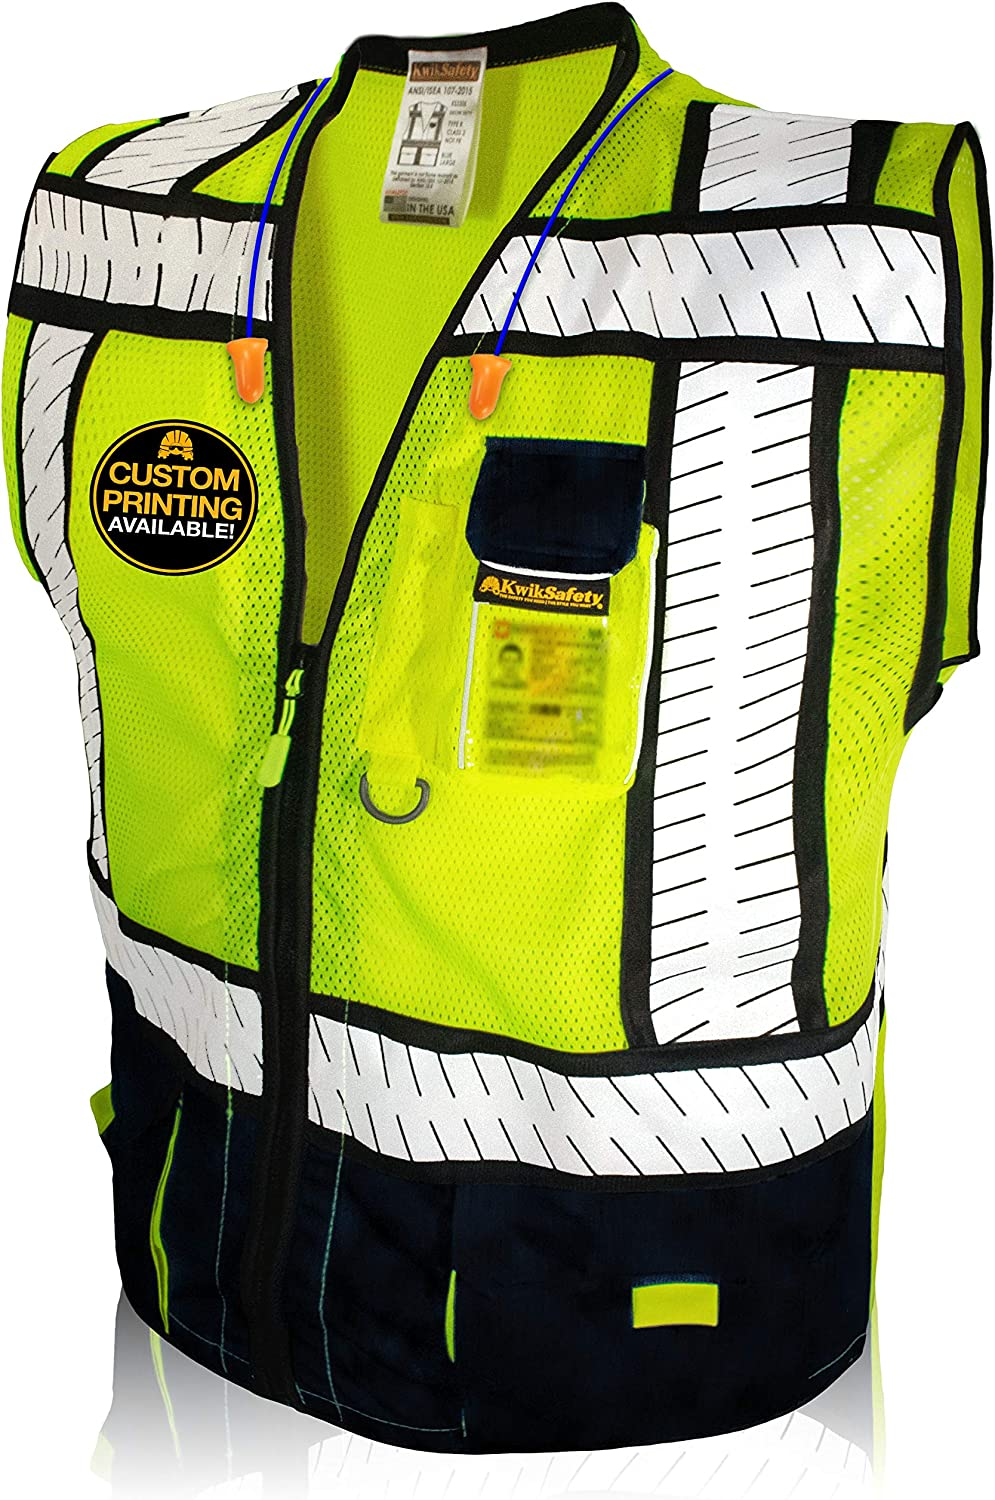 KwikSafety (Charlotte, NC) SPECIALIST (Multi-Use Pockets) Class 2 ANSI High Visibility Reflective Safety Vest Heavy Duty Solid/Mesh and with zipper HiVis Construction Surveyor Work Mens Black XX-LARGE